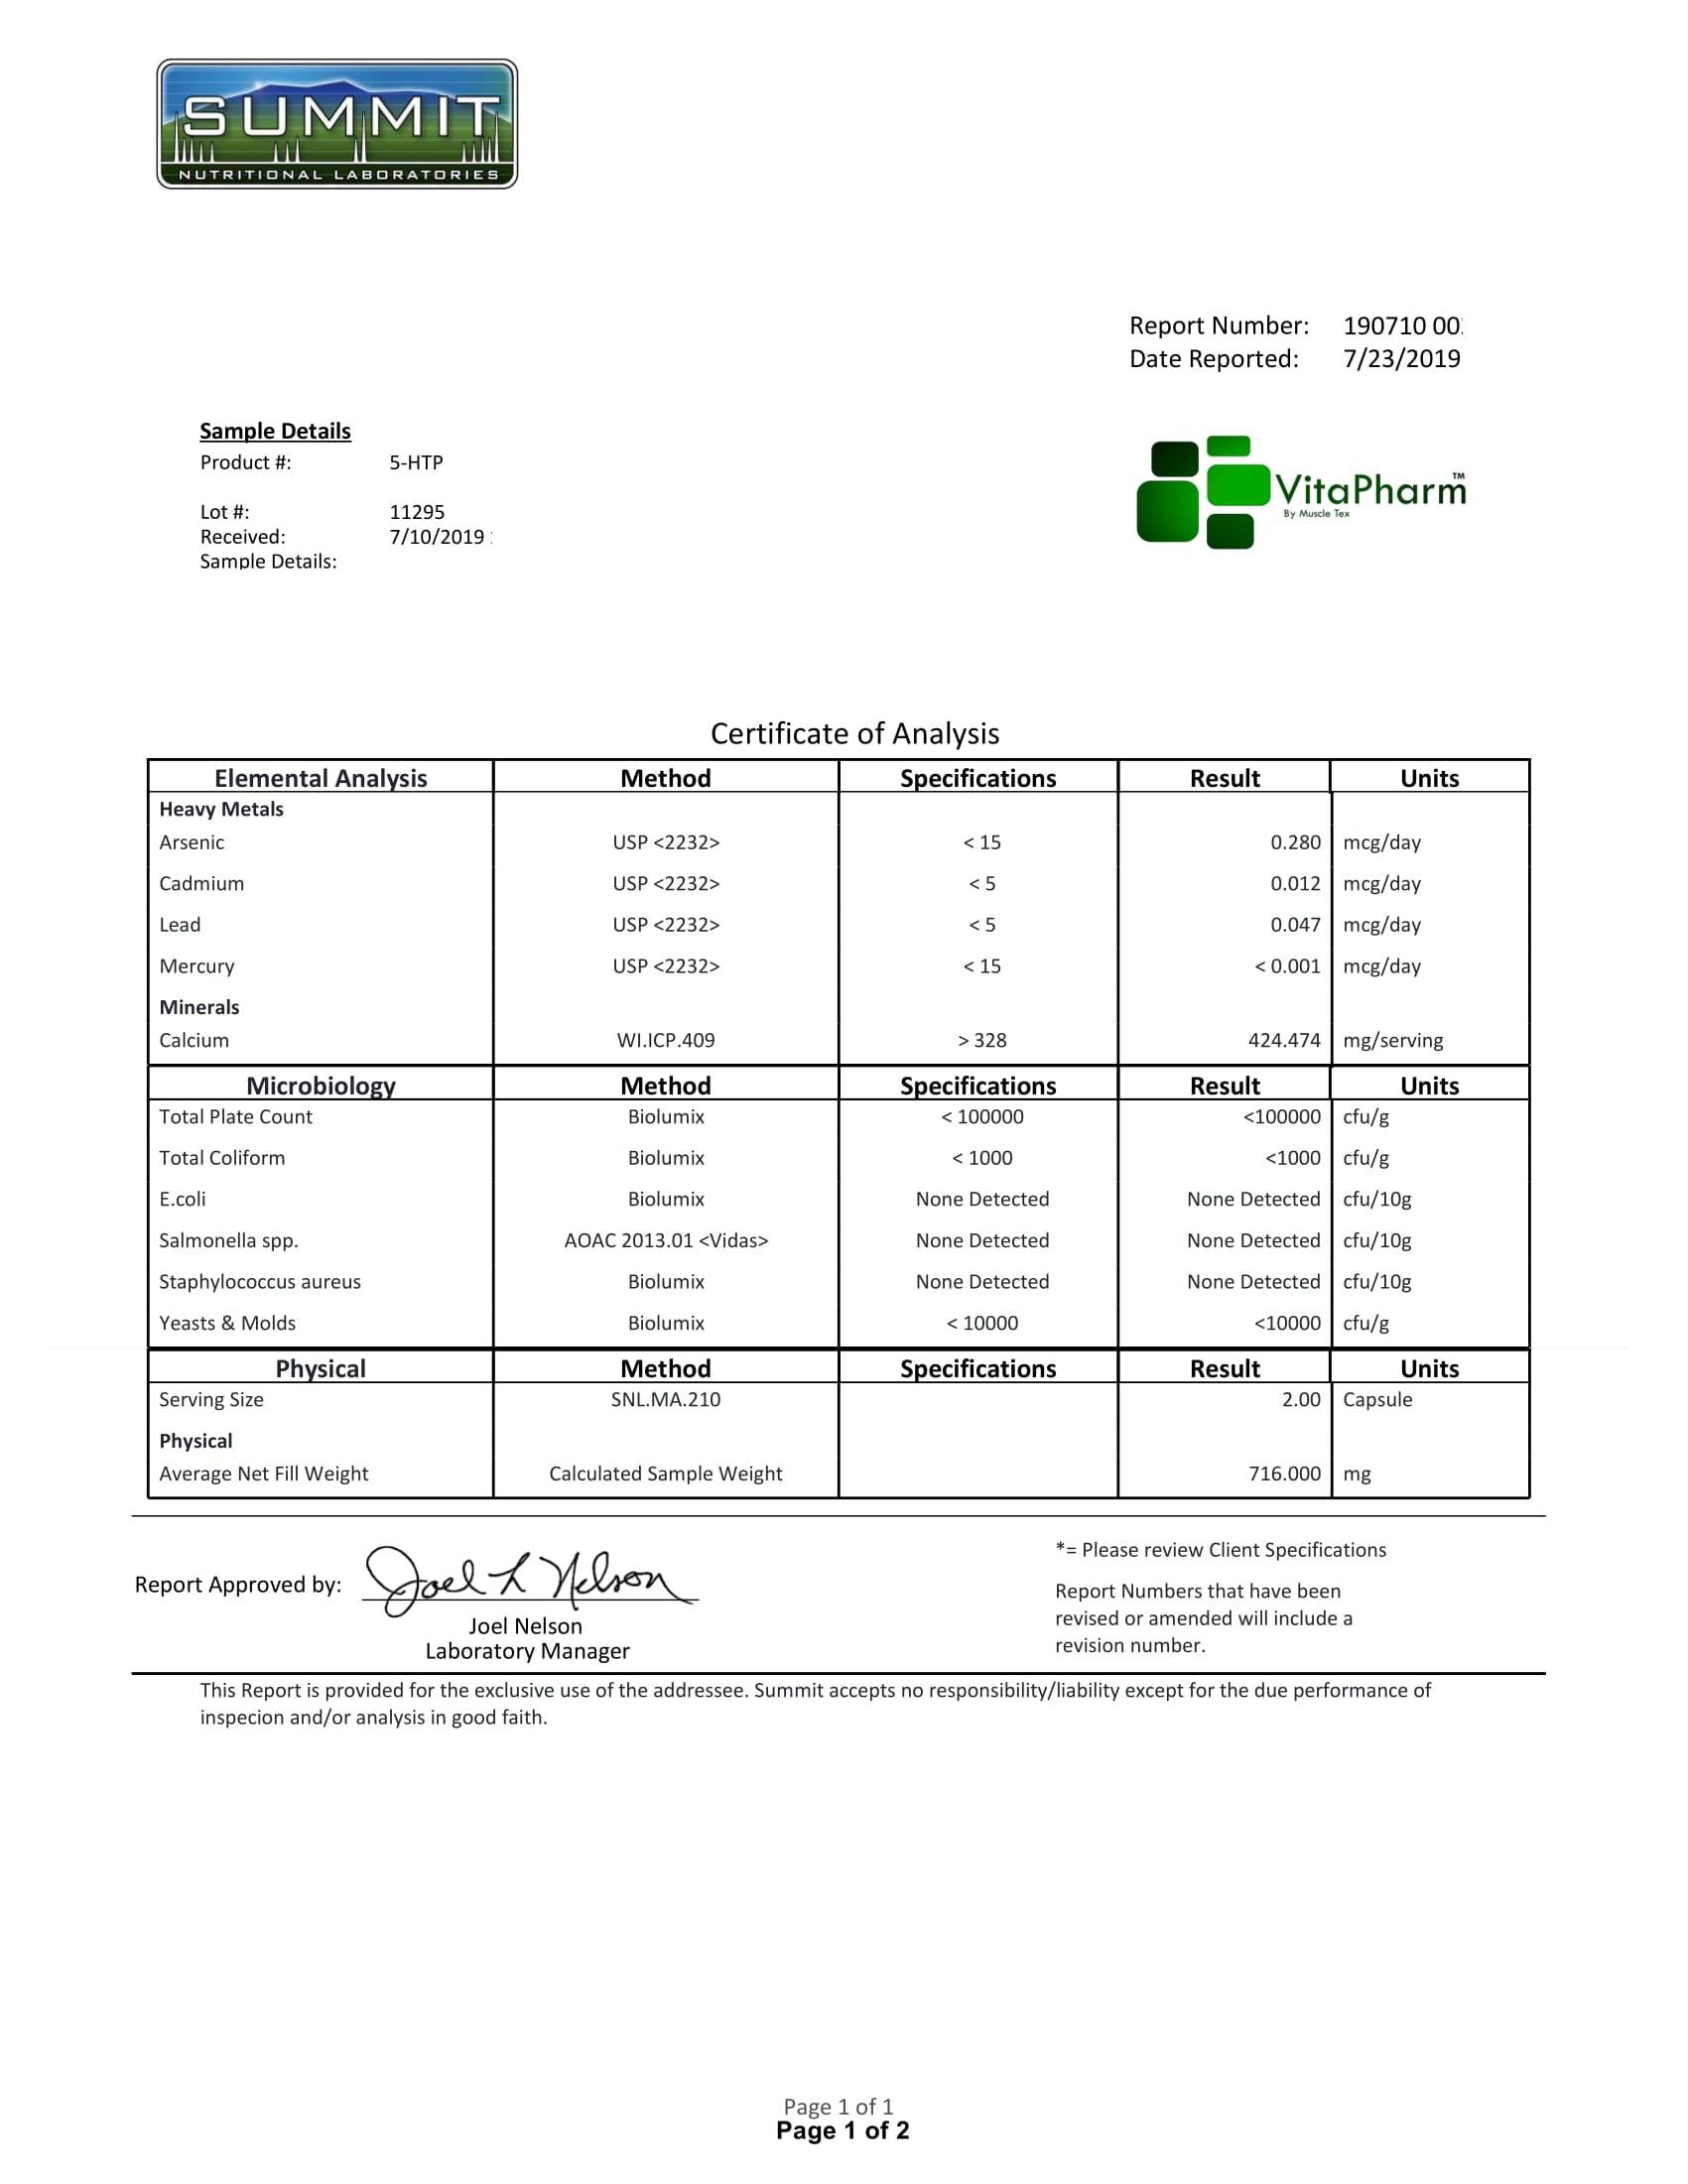 5 htp 3rd party test results